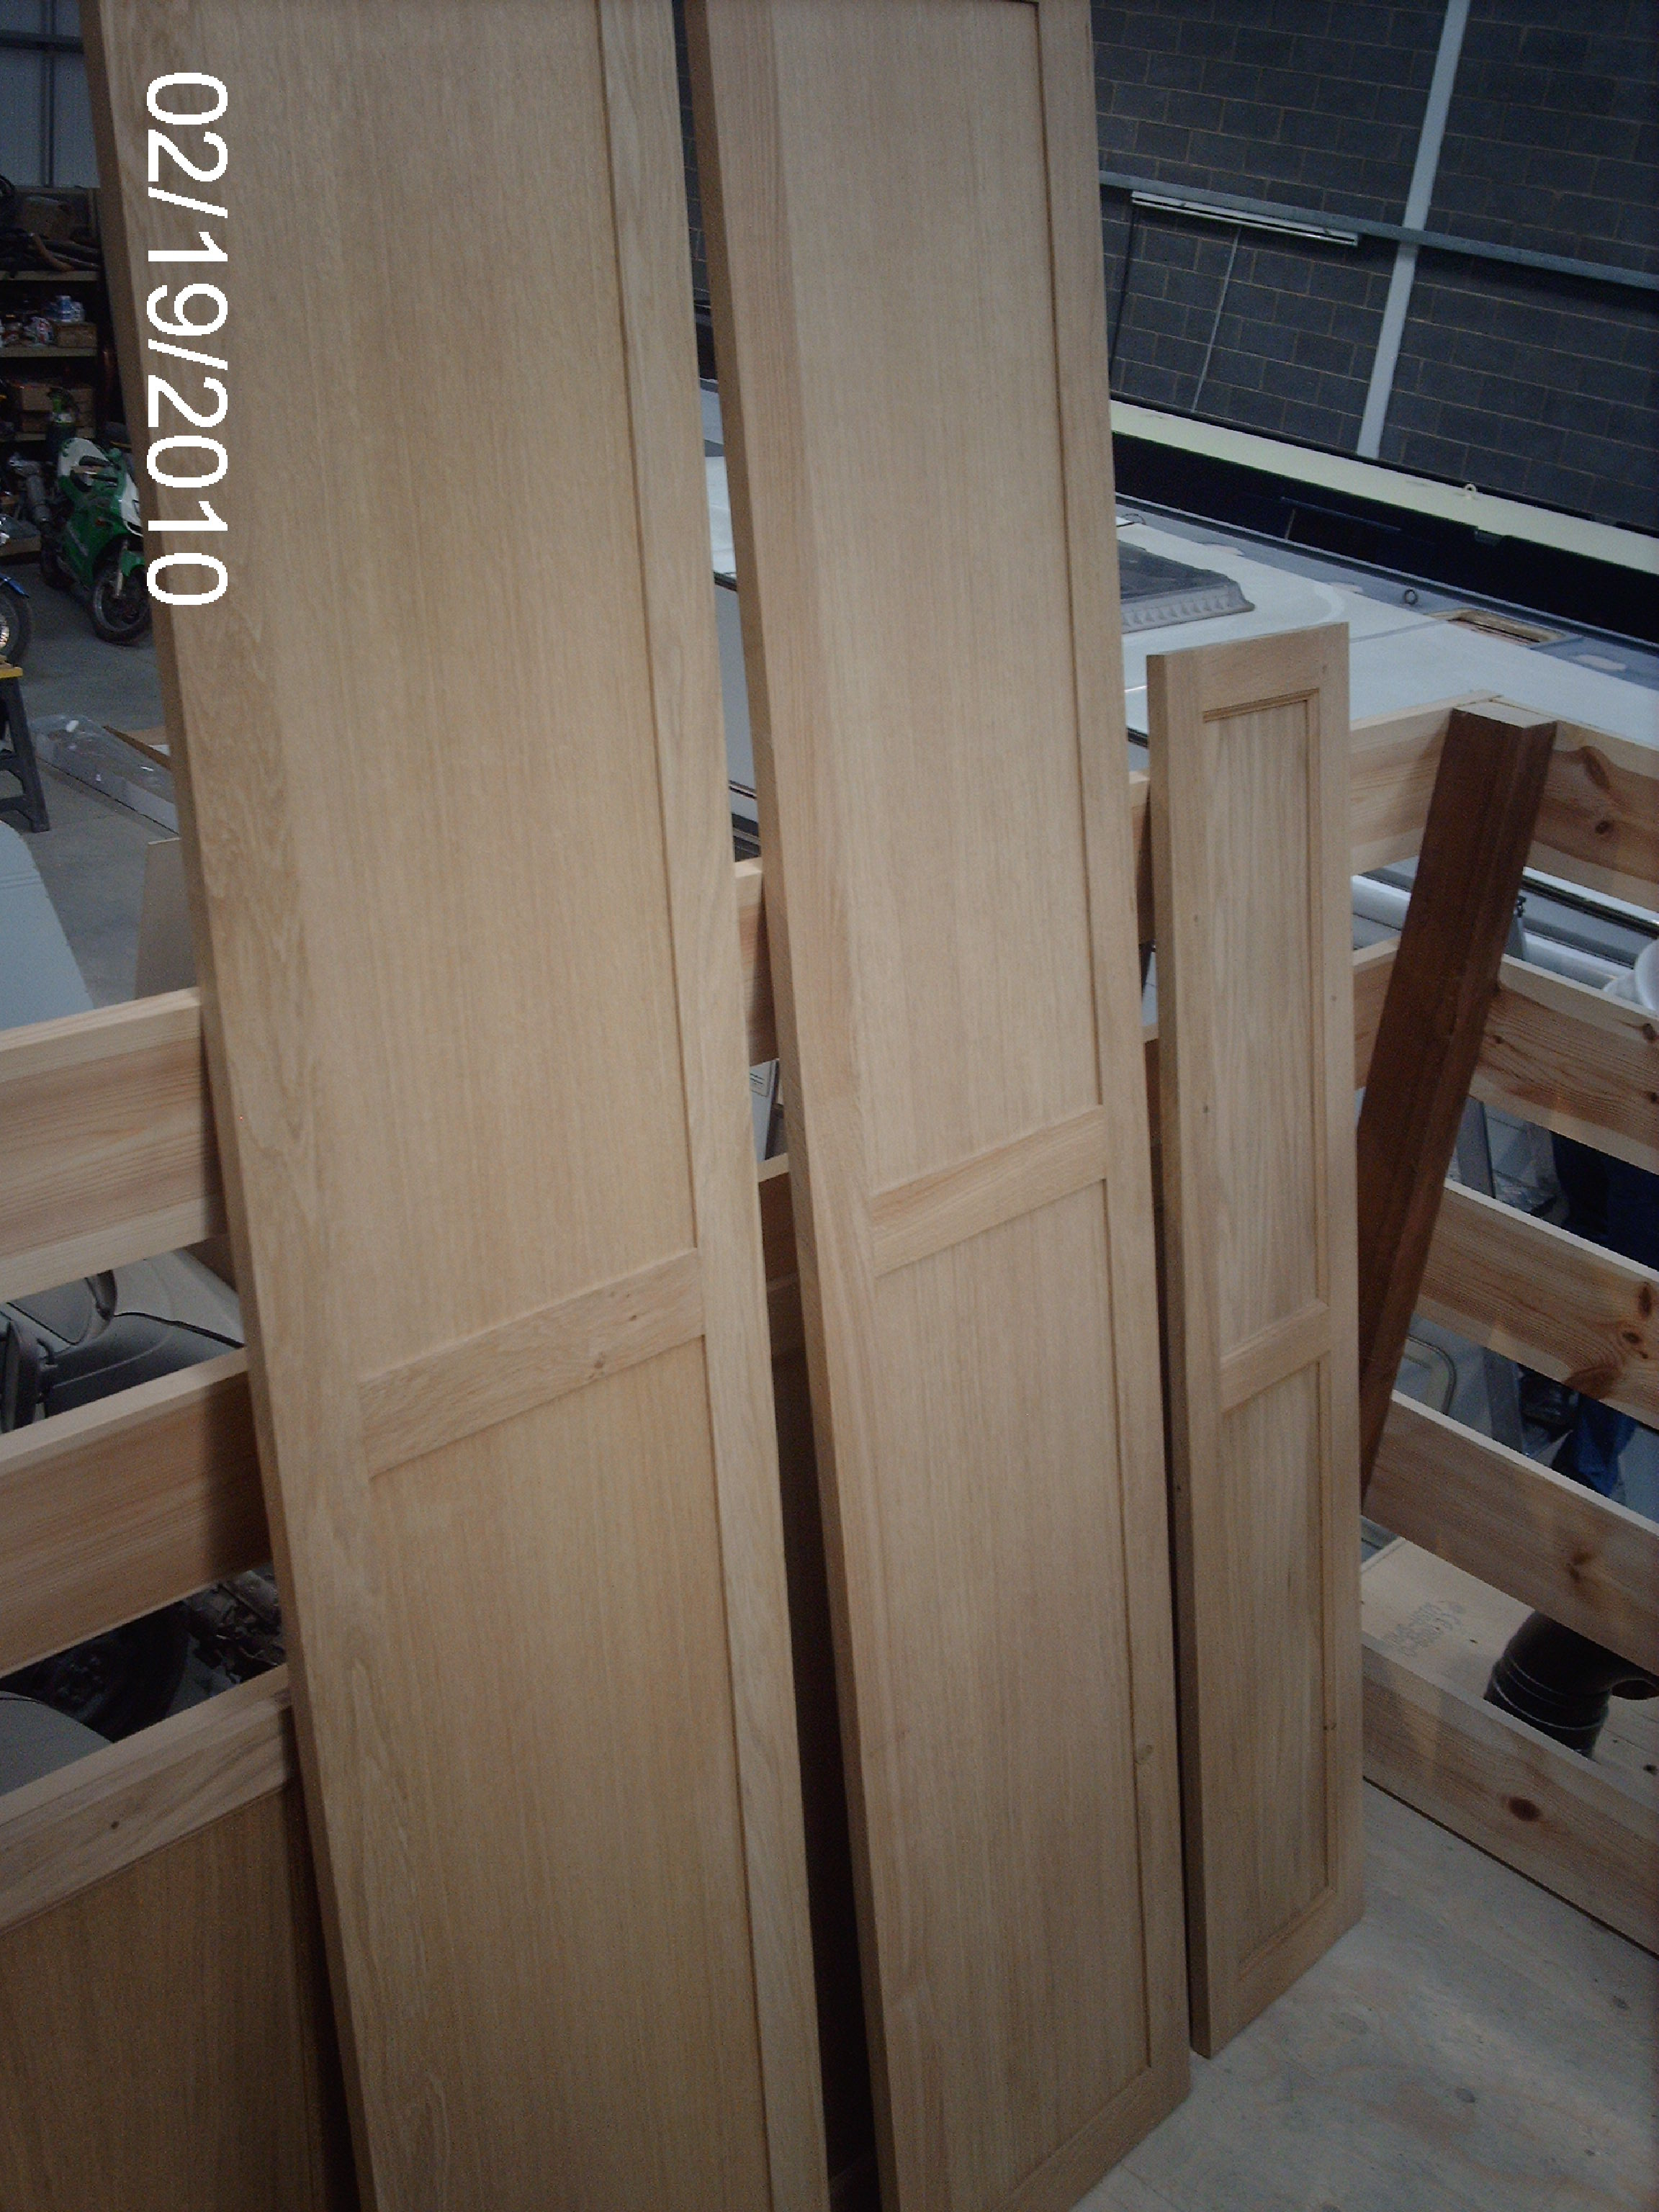 INTERIOR WARDROBE DOORS - OAK.JPG